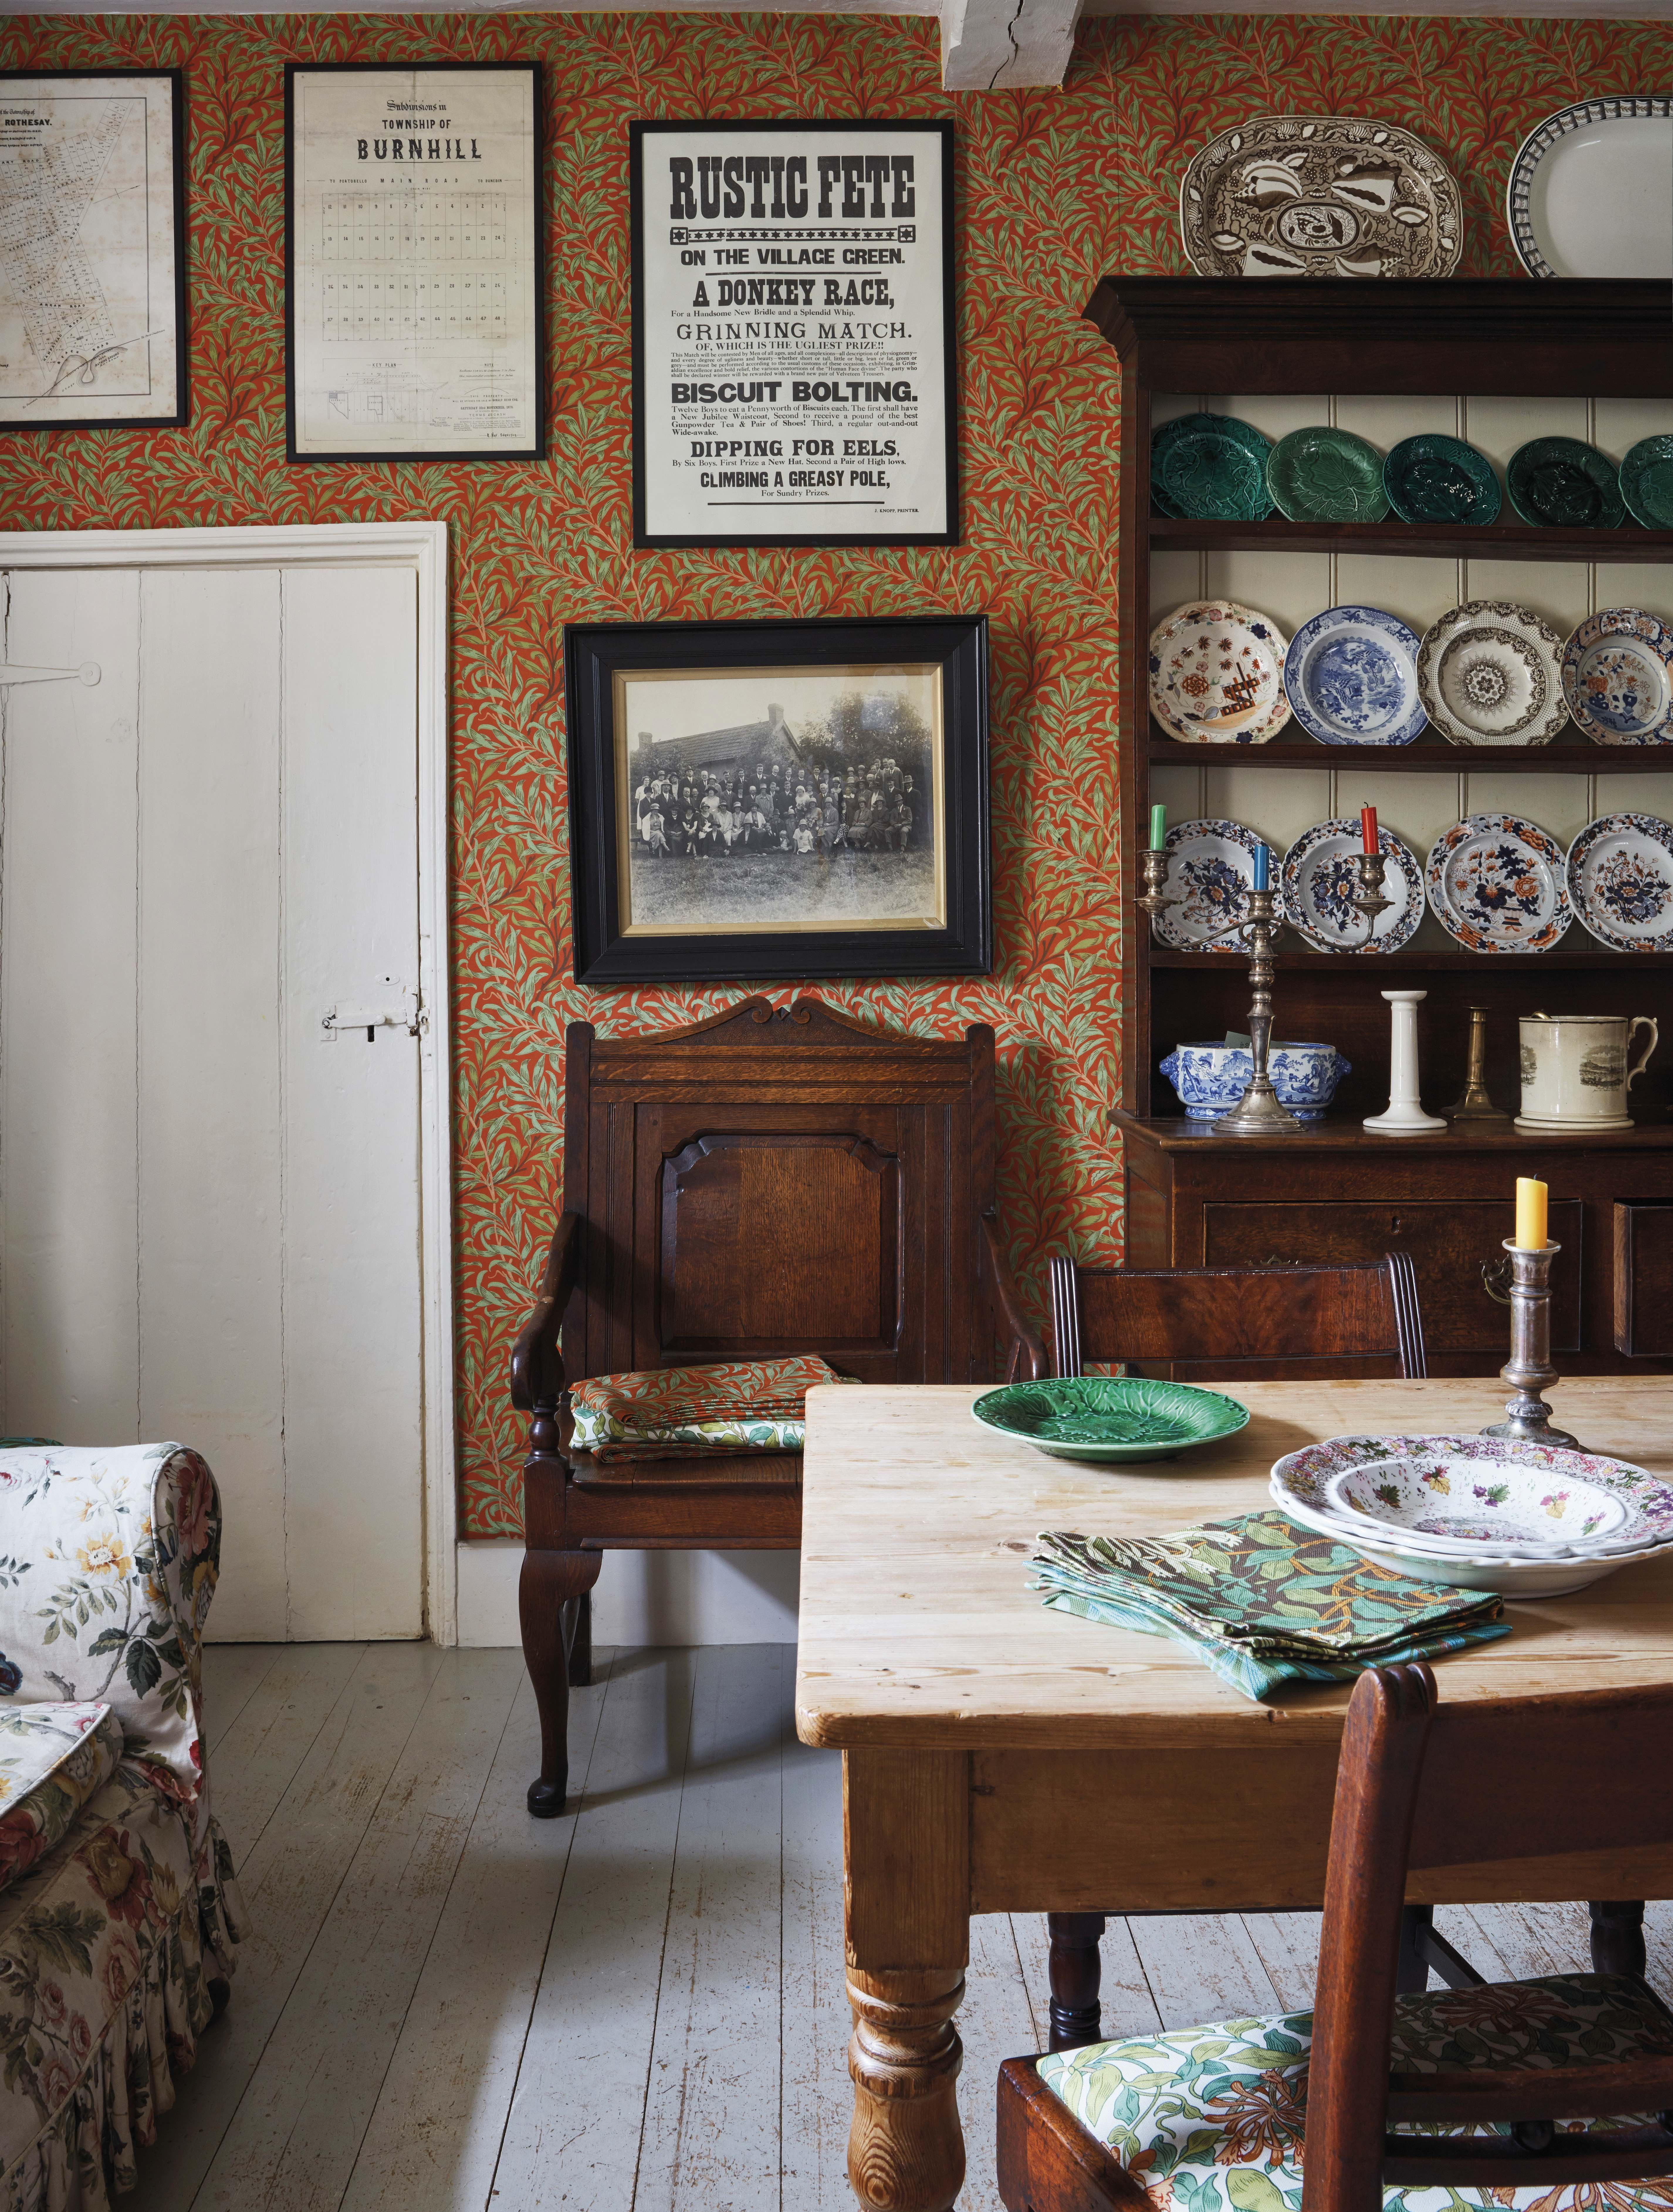 This Decked-Out Dorset Home Is Covered in Floor-to-Ceiling Morris & Co. Patterns